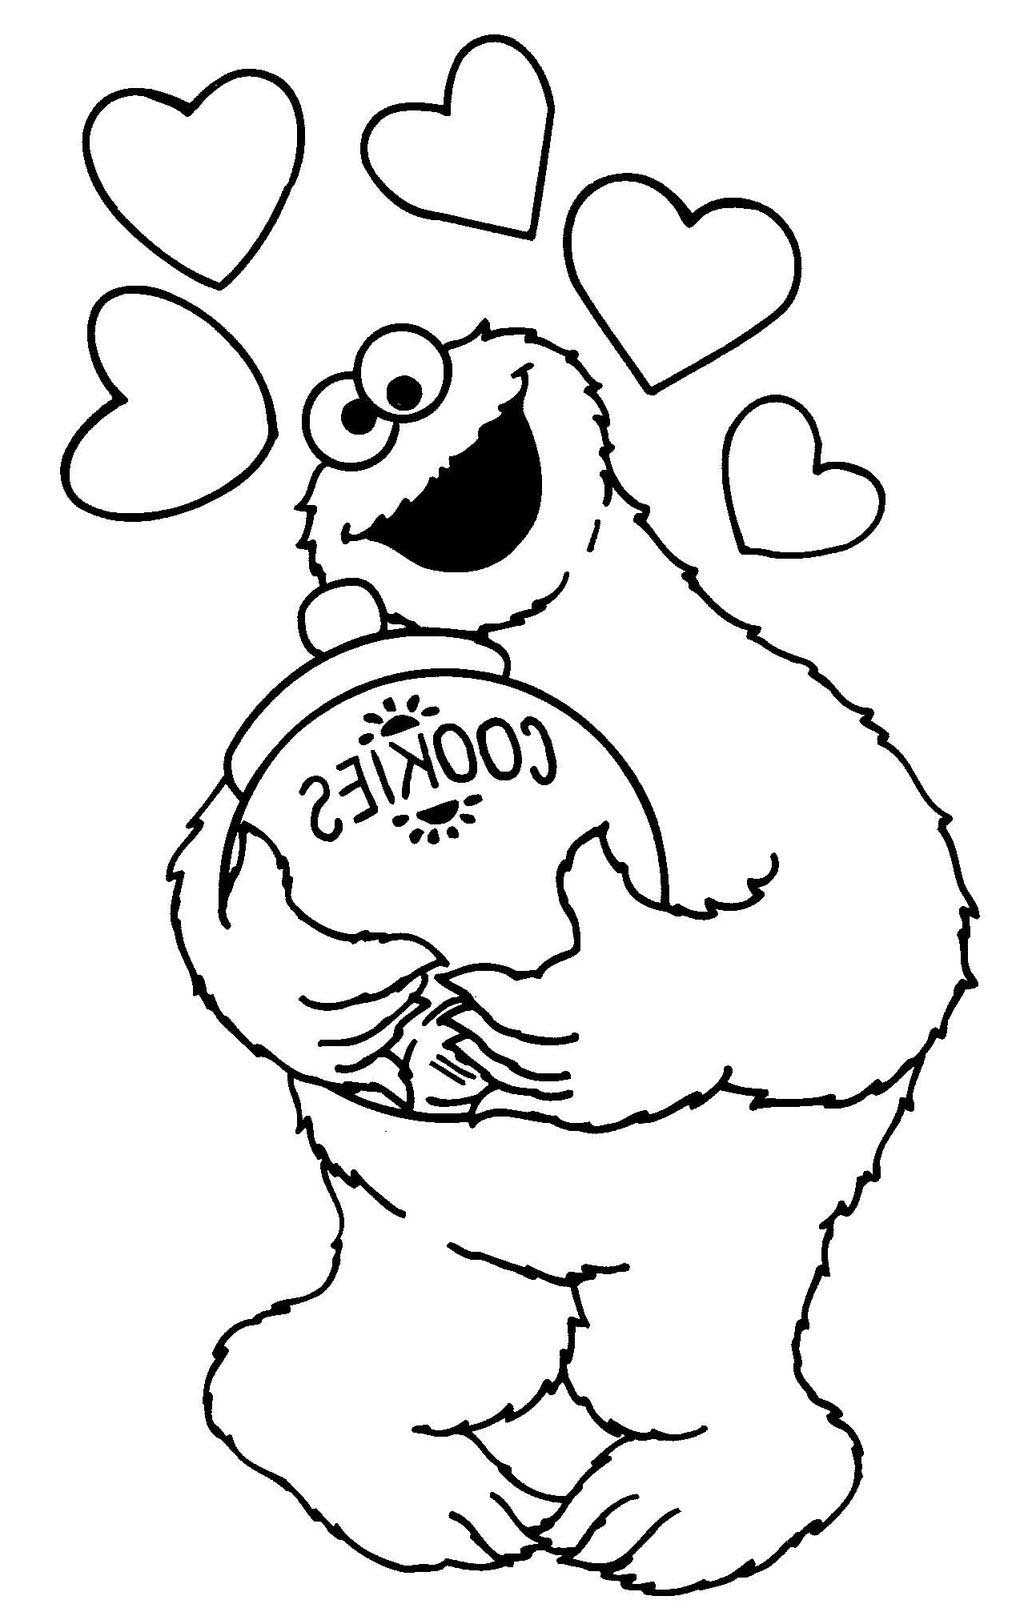 Cookie Monster Coloring Pages Jar Clipart - Free Printable ...